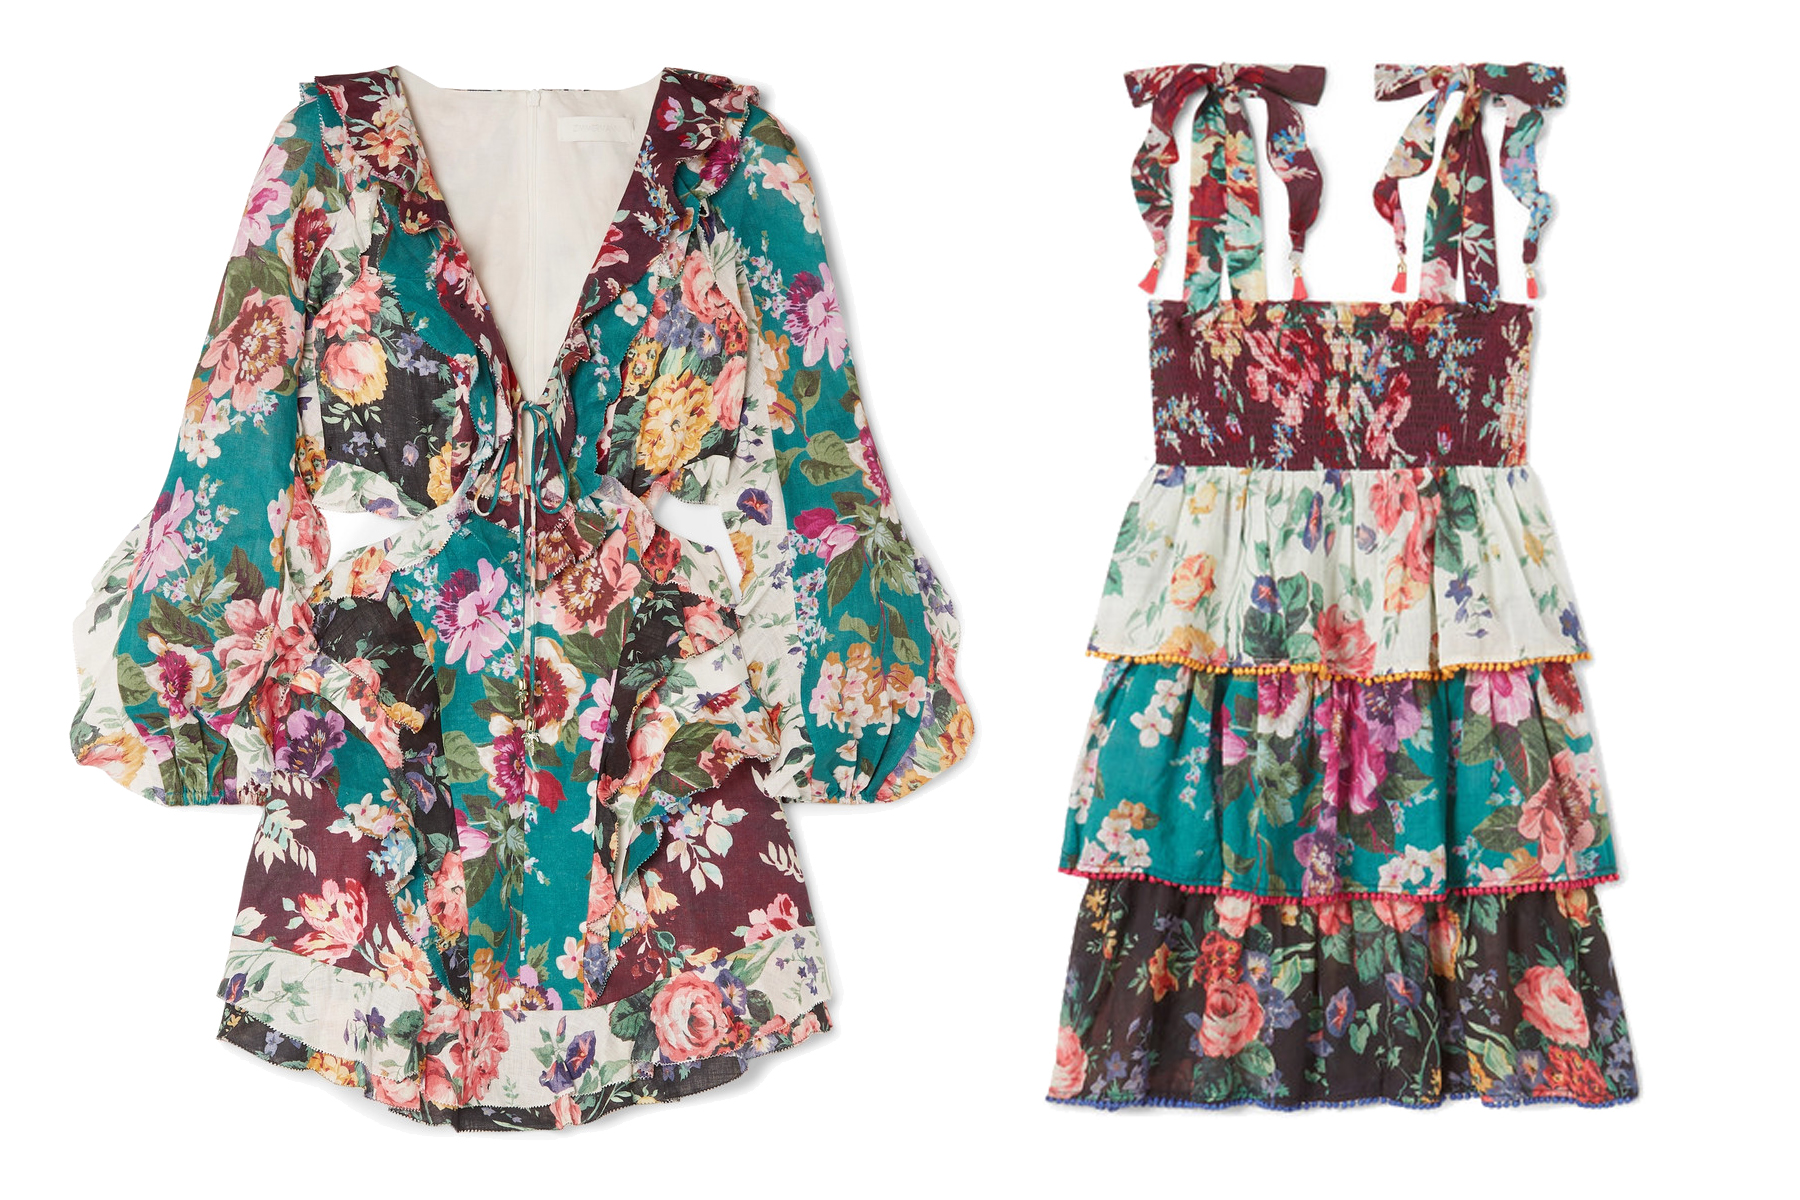 dolce-gabbana 6 Ways for Moms and Kids to Dress Like They're Headed to the South of France